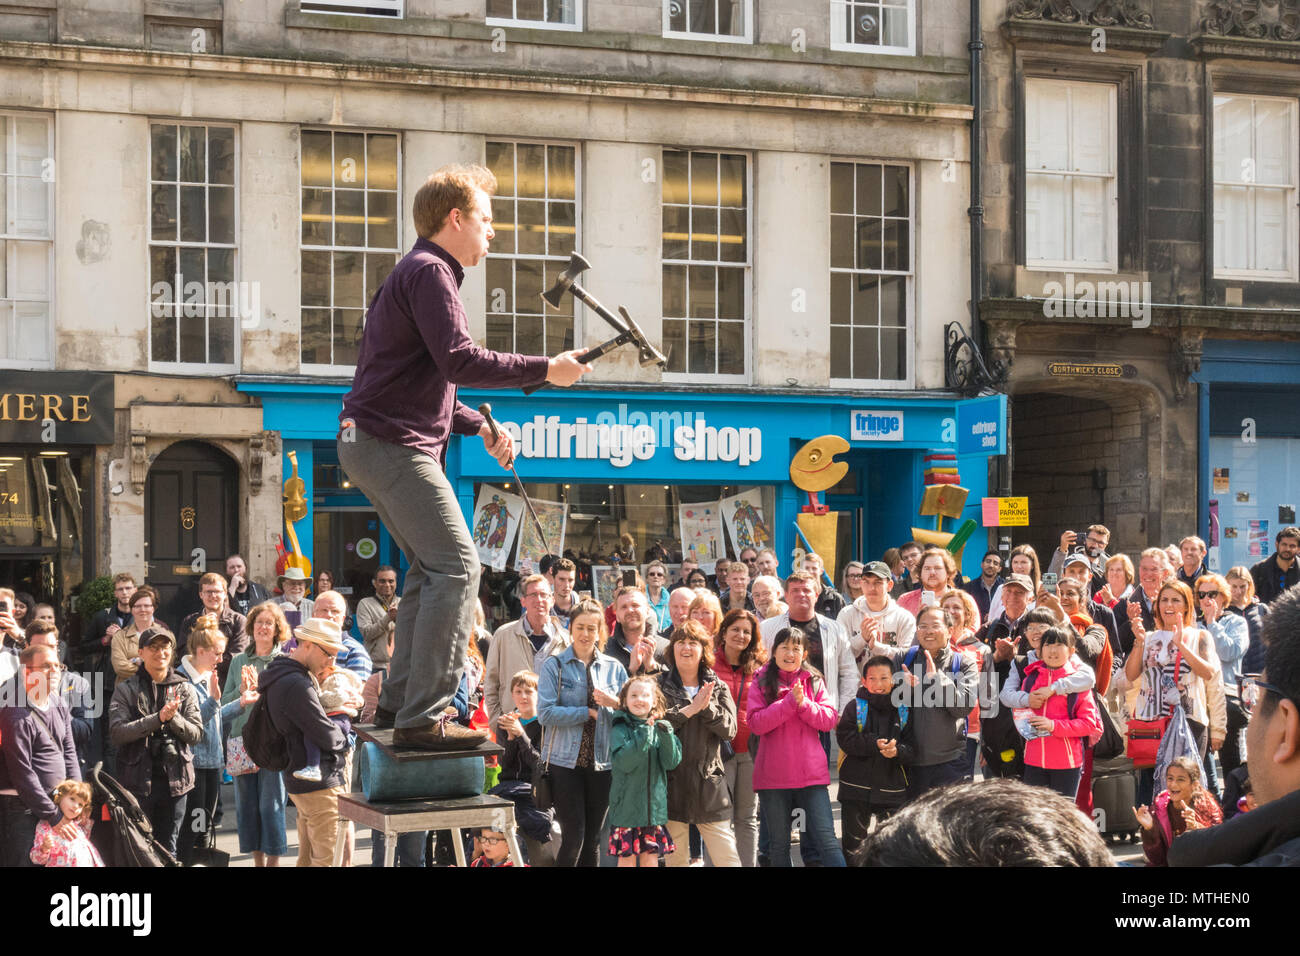 male Street performer juggling a knife and axes while balancing in front of large crowd on Edinburgh's Royal Mile, Scotland, UK - Stock Image